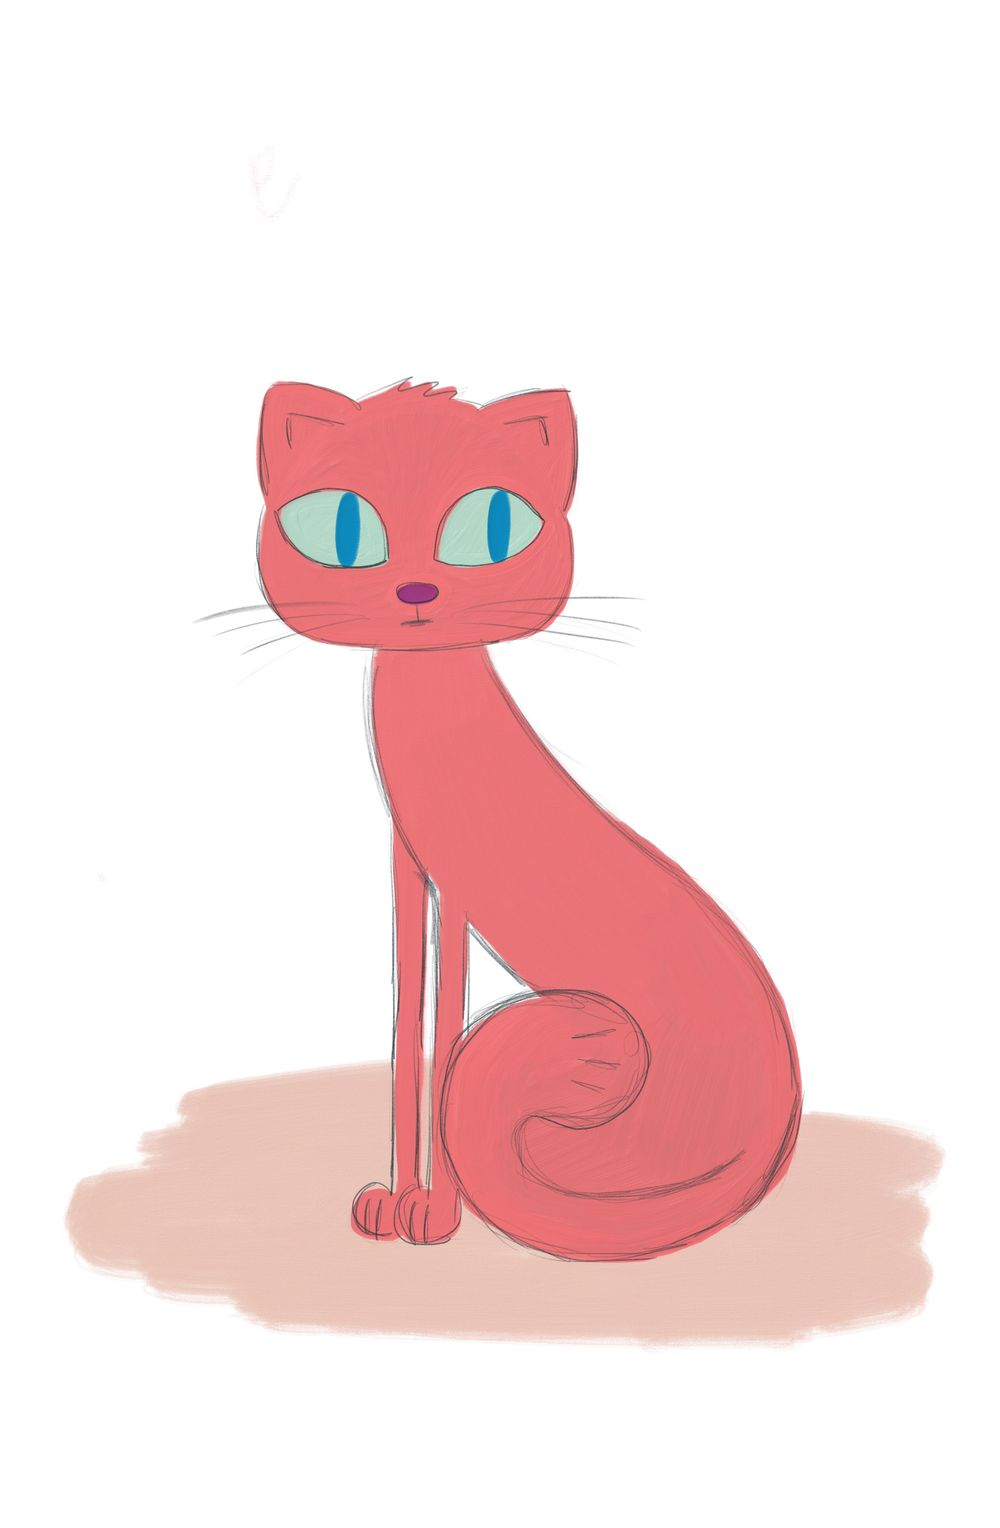 Kitty Cat - image 2 - student project